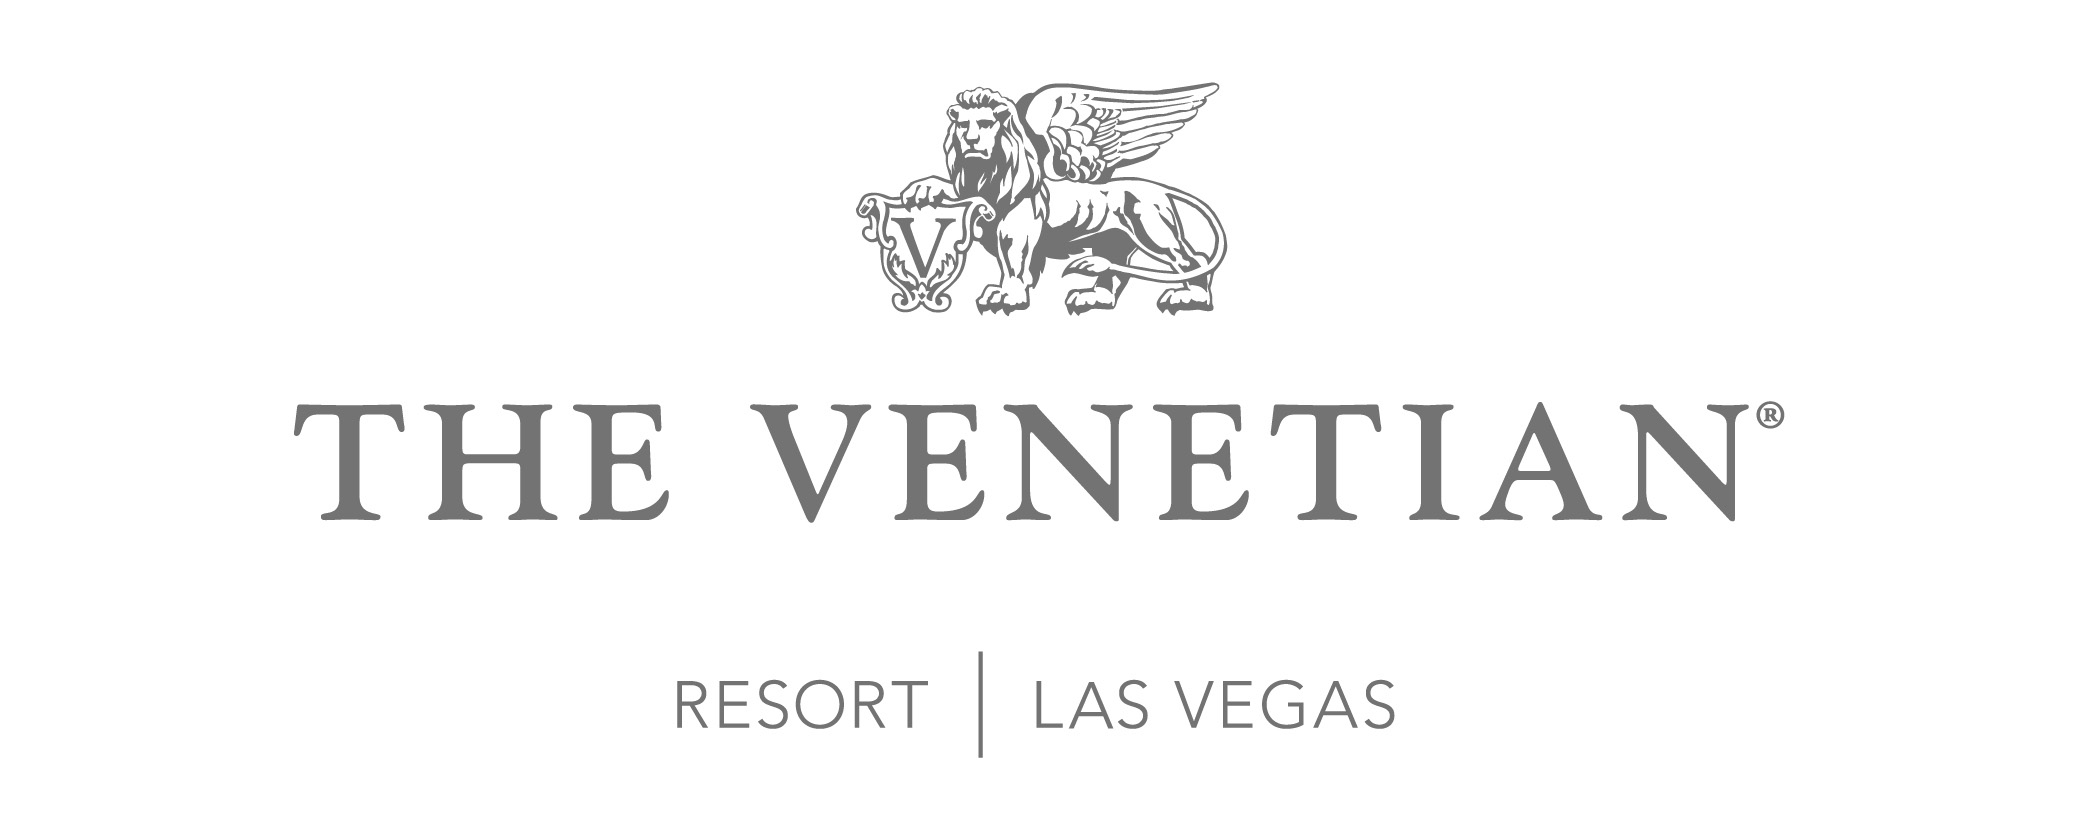 The Venetian Resort & Casino, Client Logo,